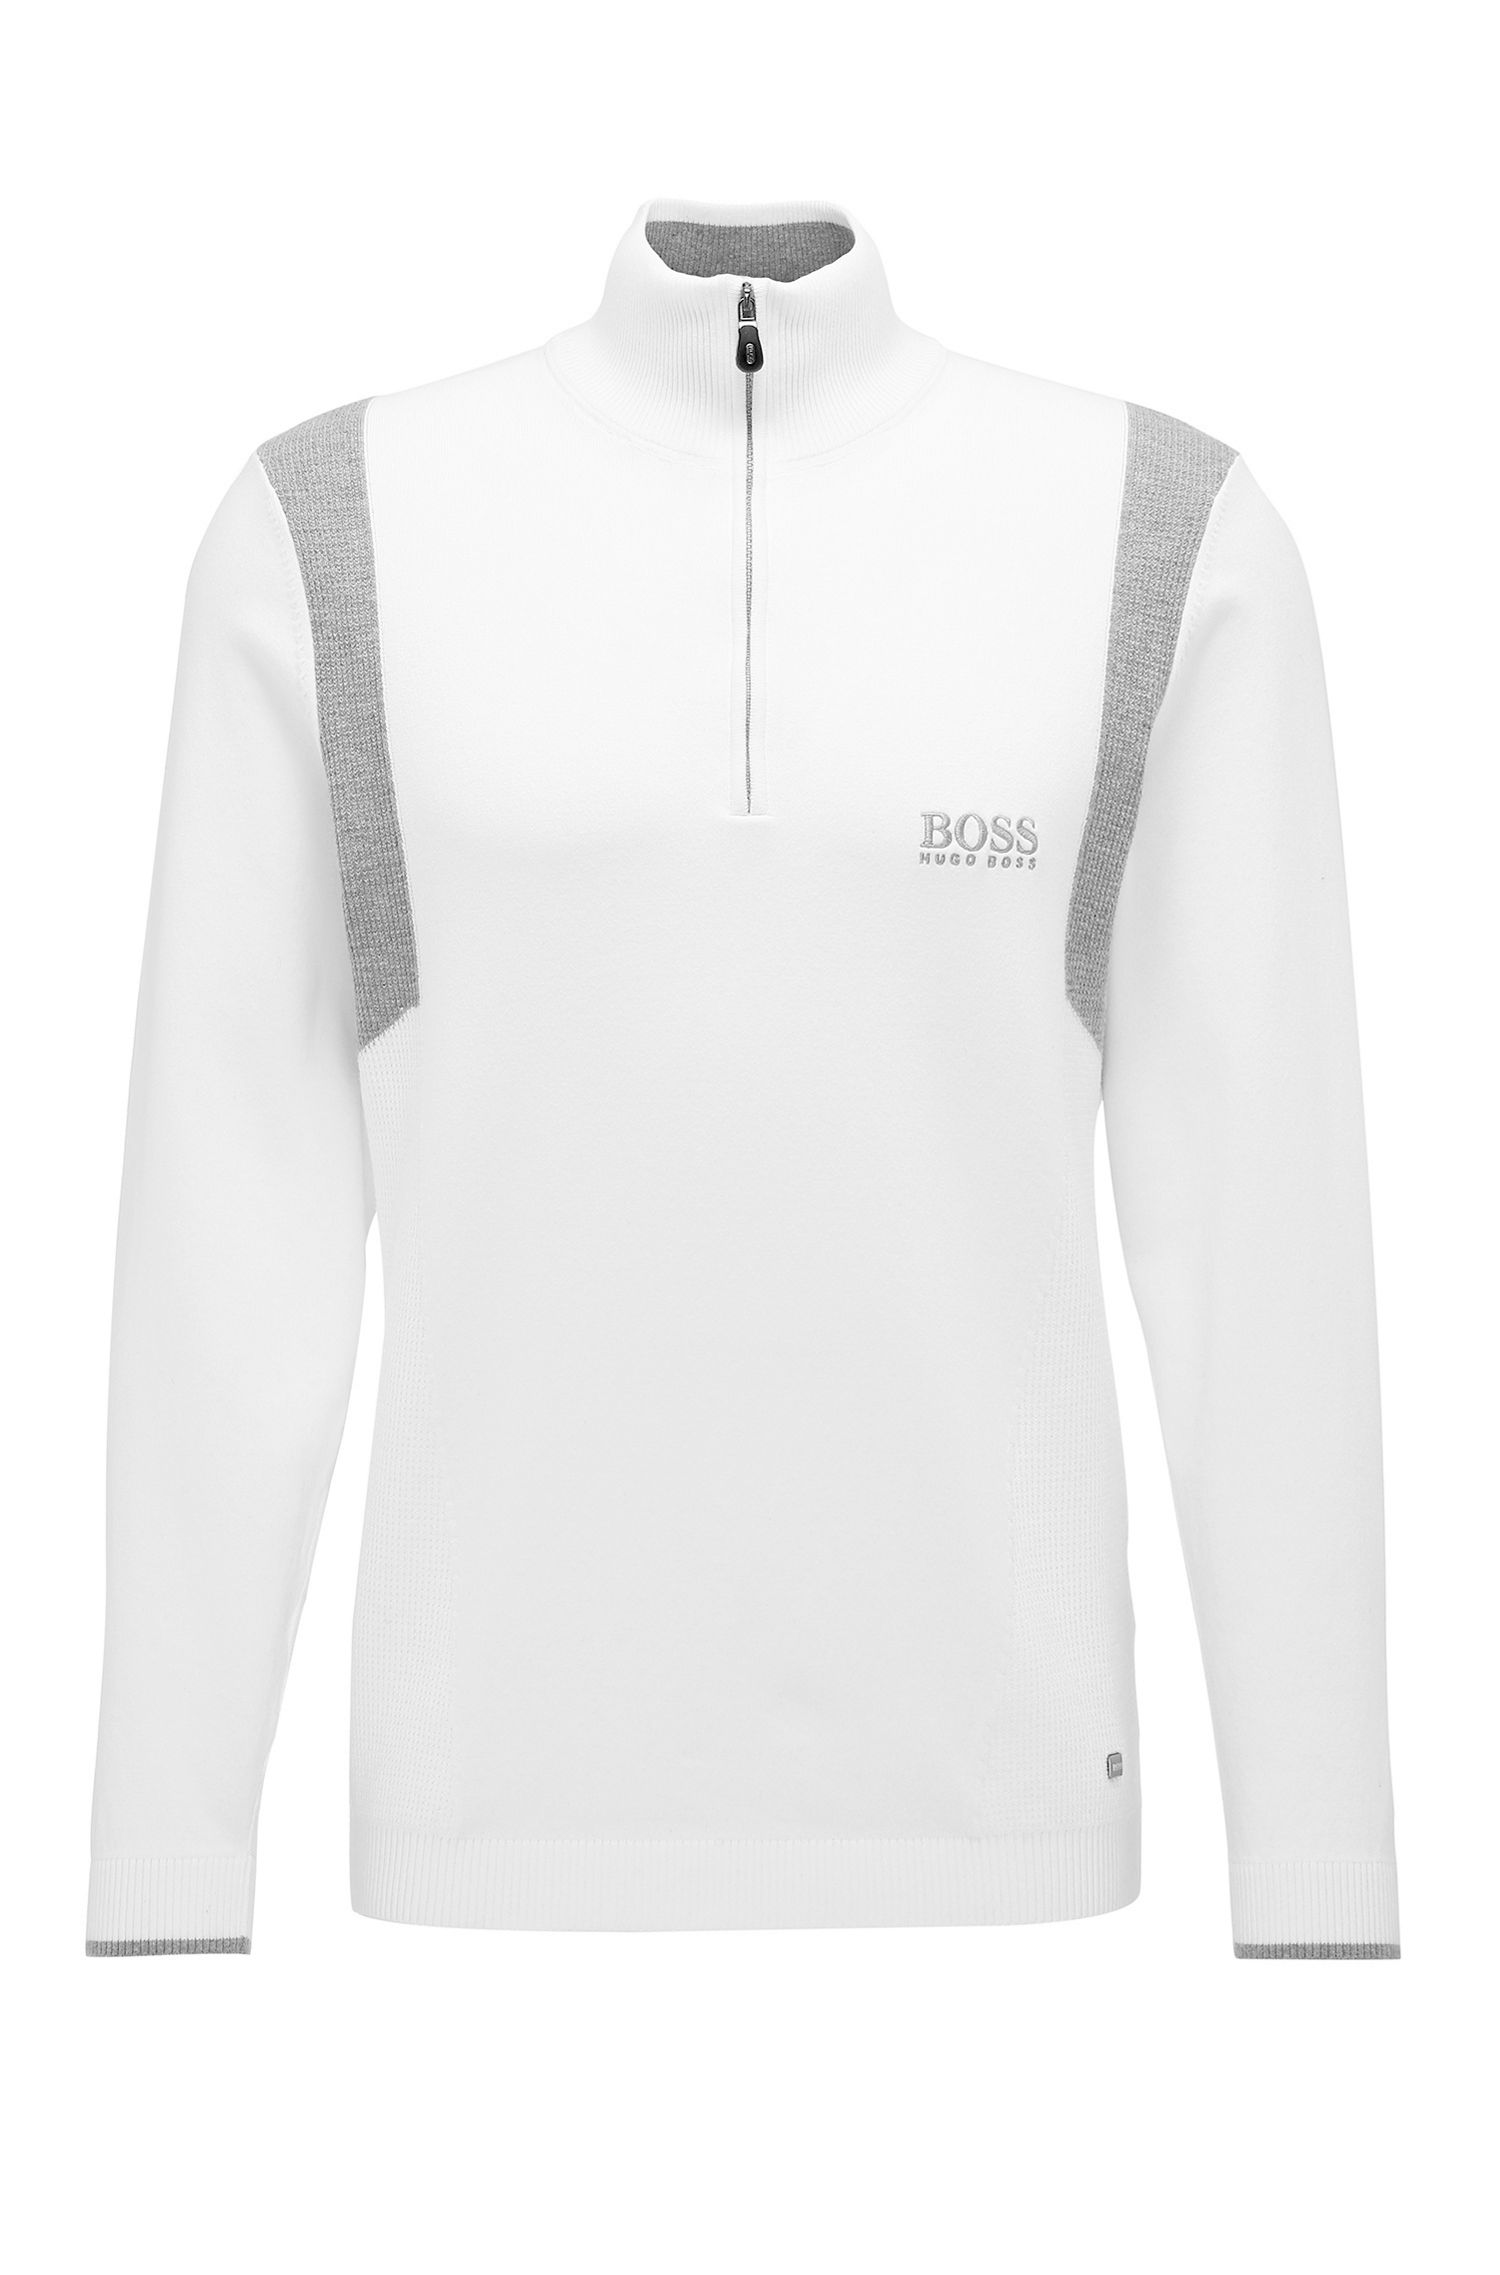 Water-Repellent Stretch Cotton Sweater | Zelichior Pro S17